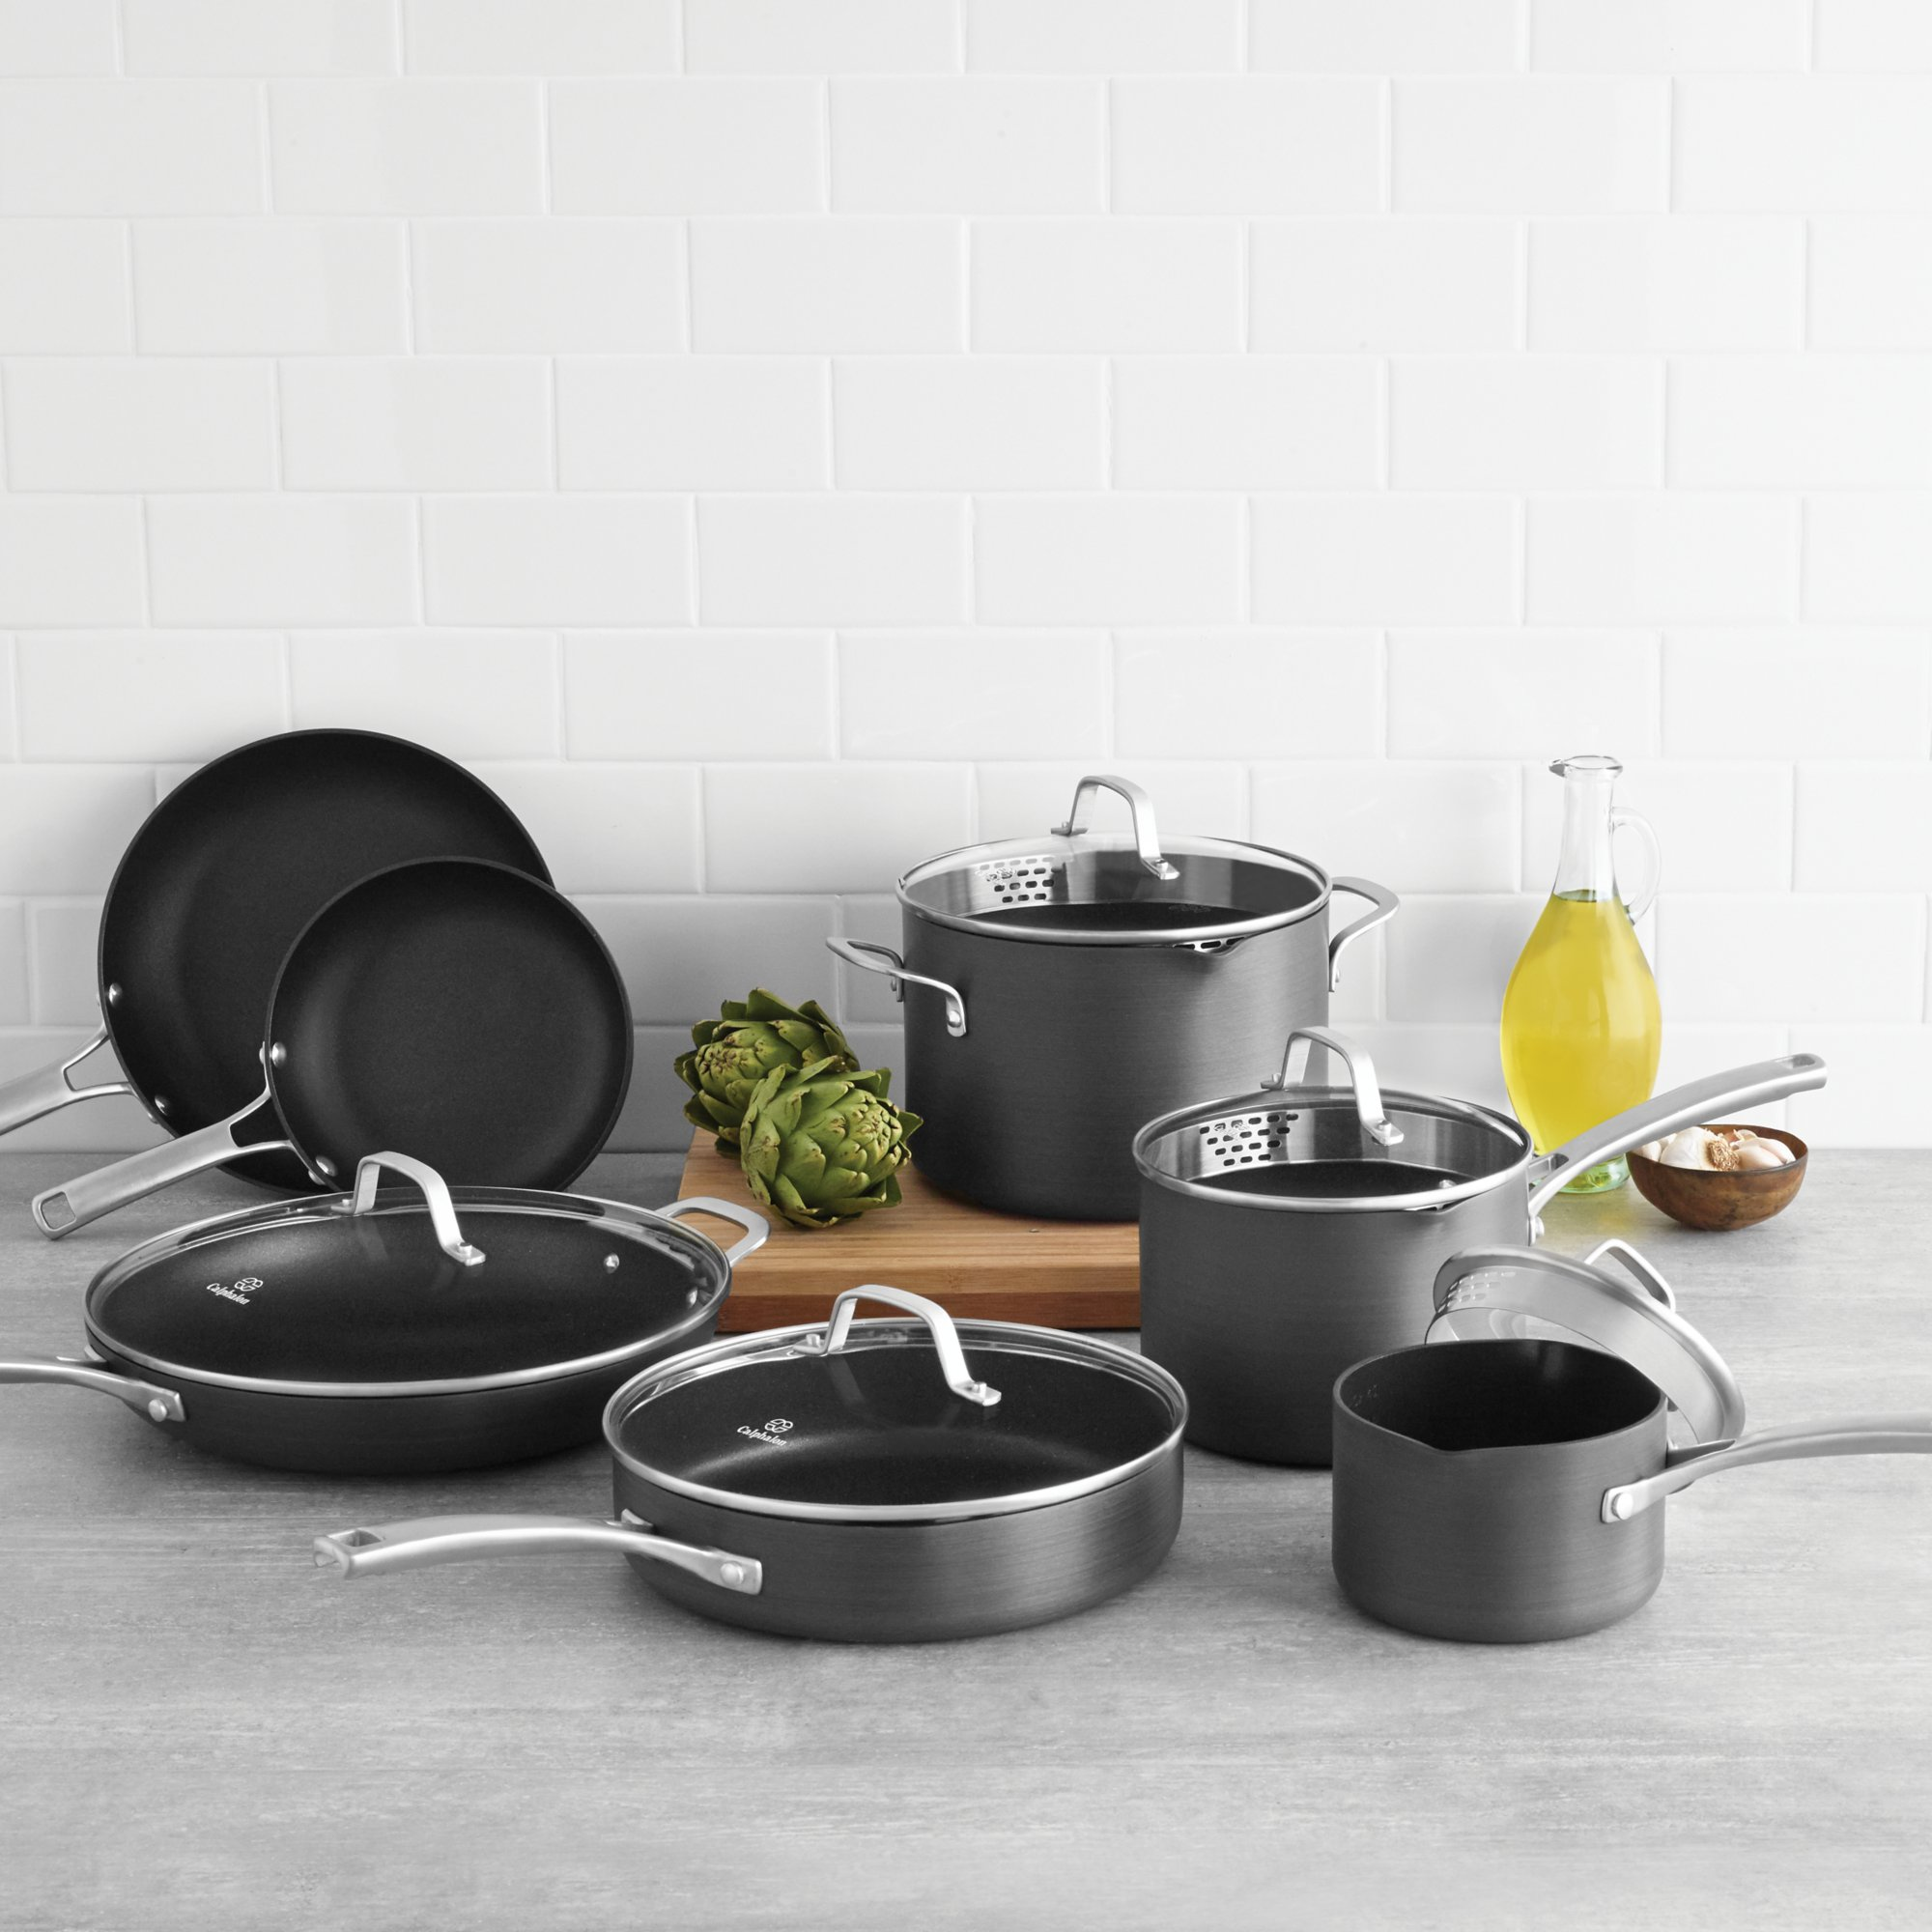 Calphalon Classic Nonstick 12 Pc Cookware Set